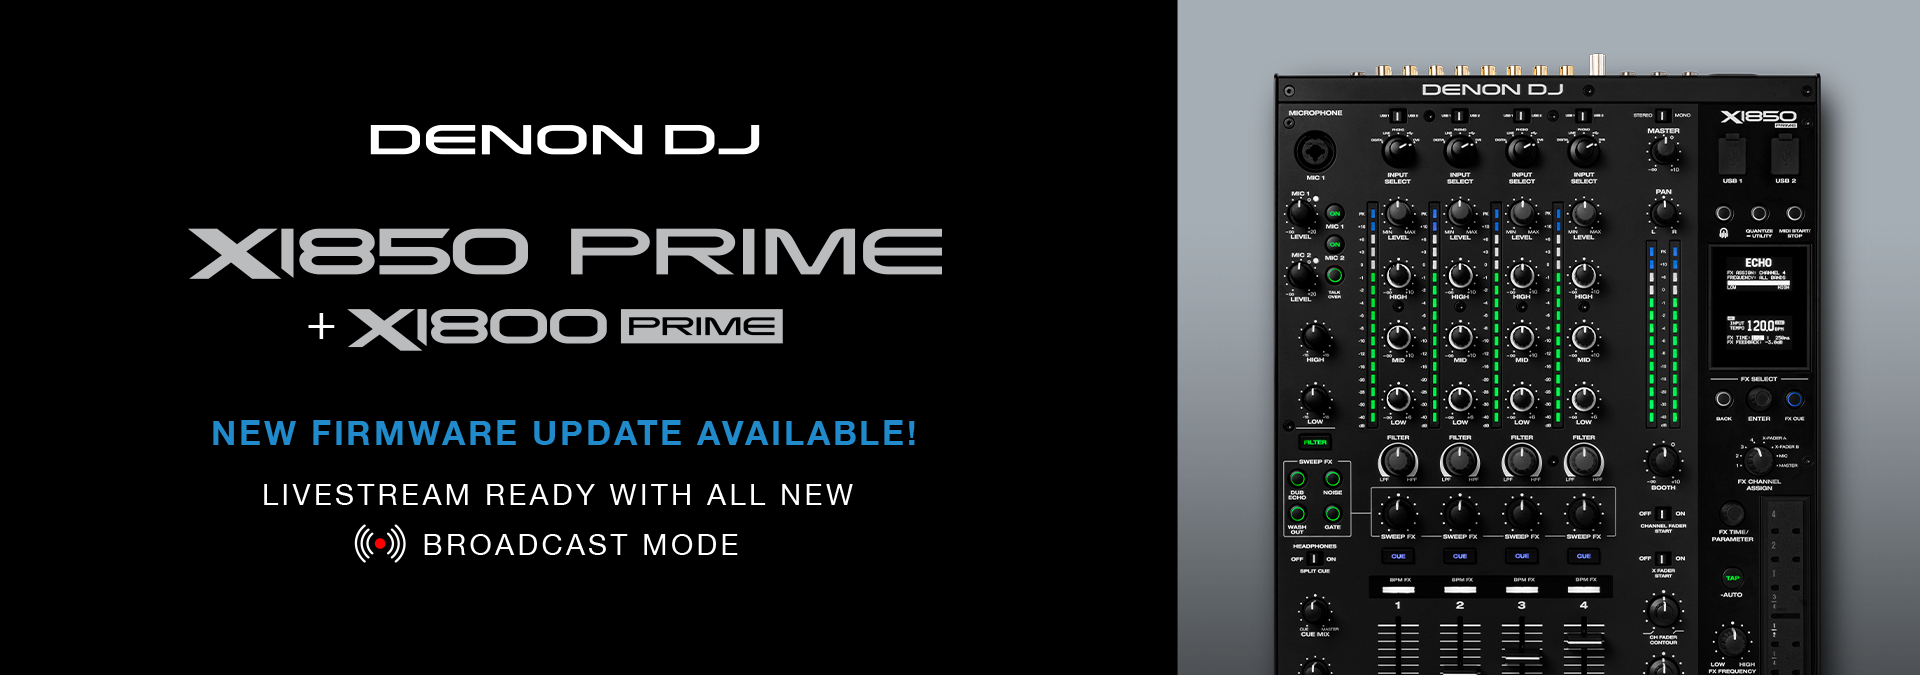 X1850 PRIME & X1800 PRIME firmware update. Livestream with all new Broadcast Mode